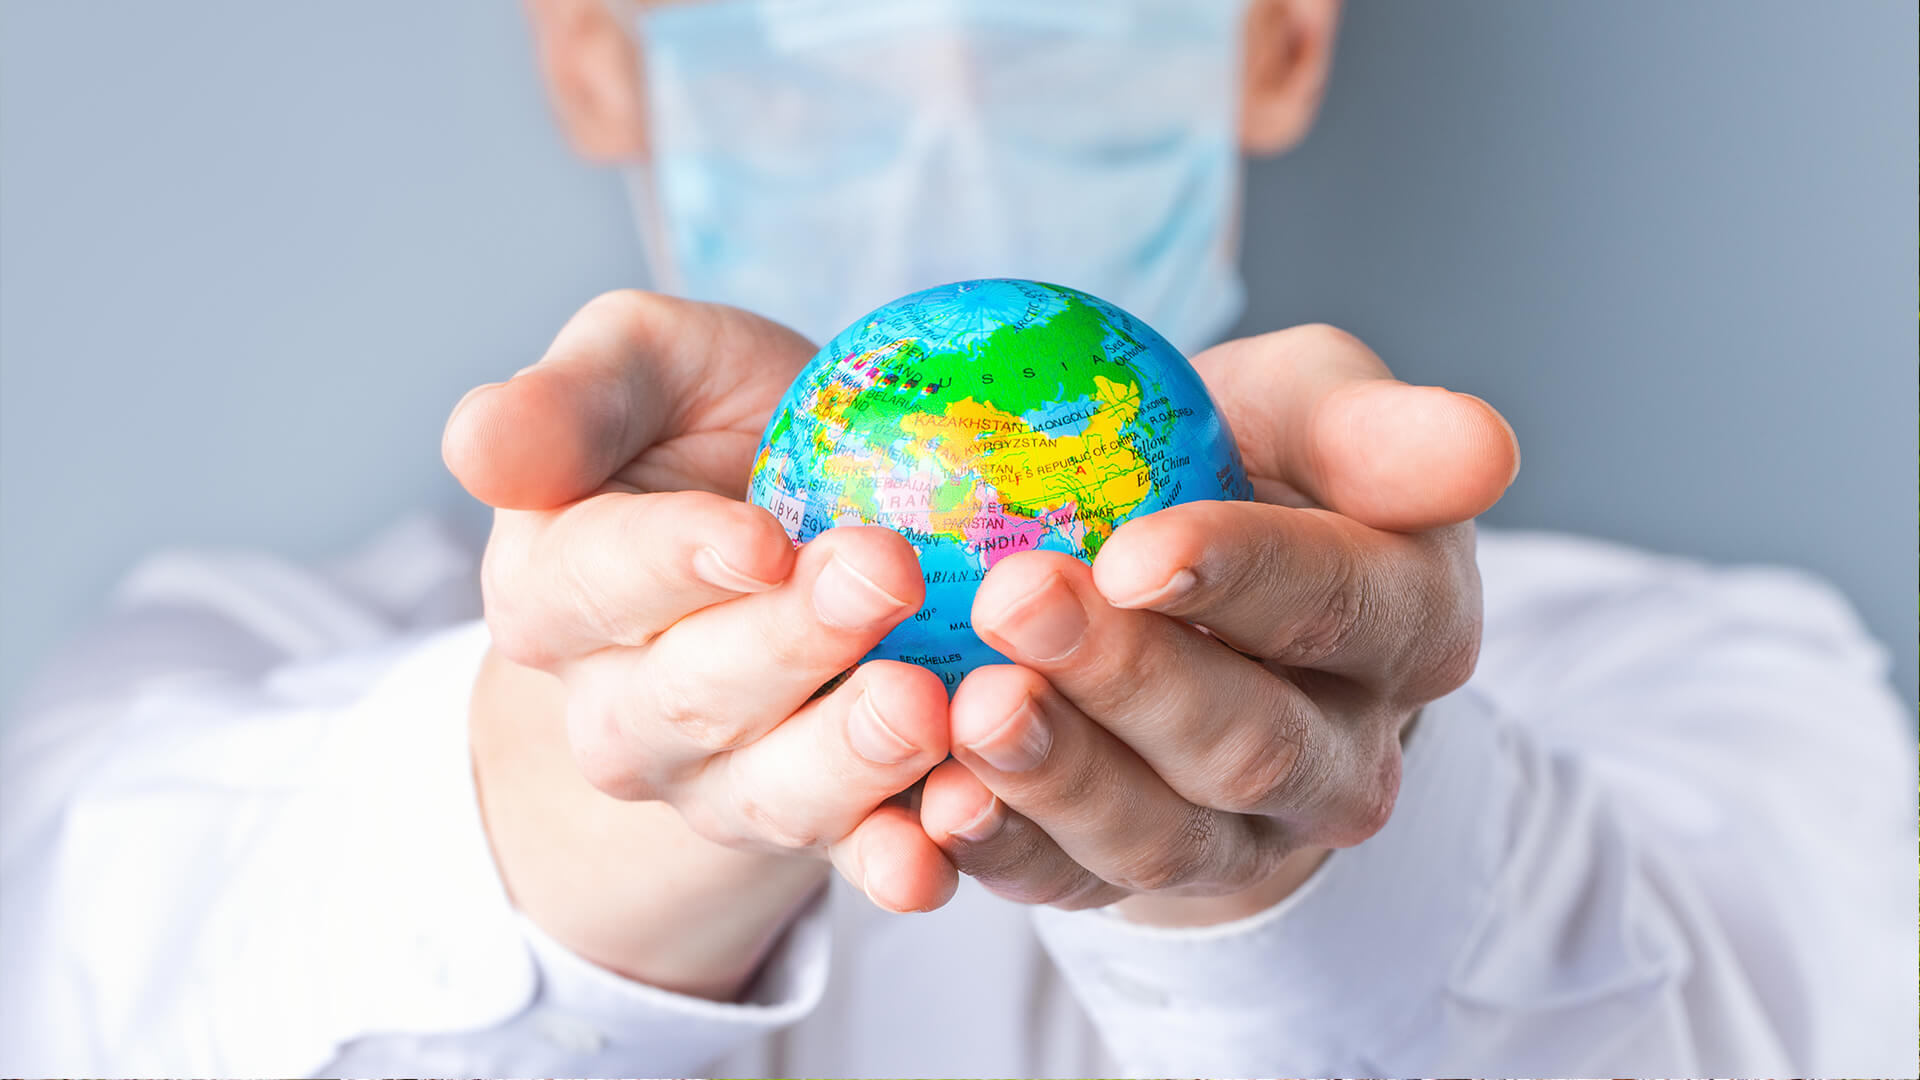 Is pharma ready to respond to the climate crisis